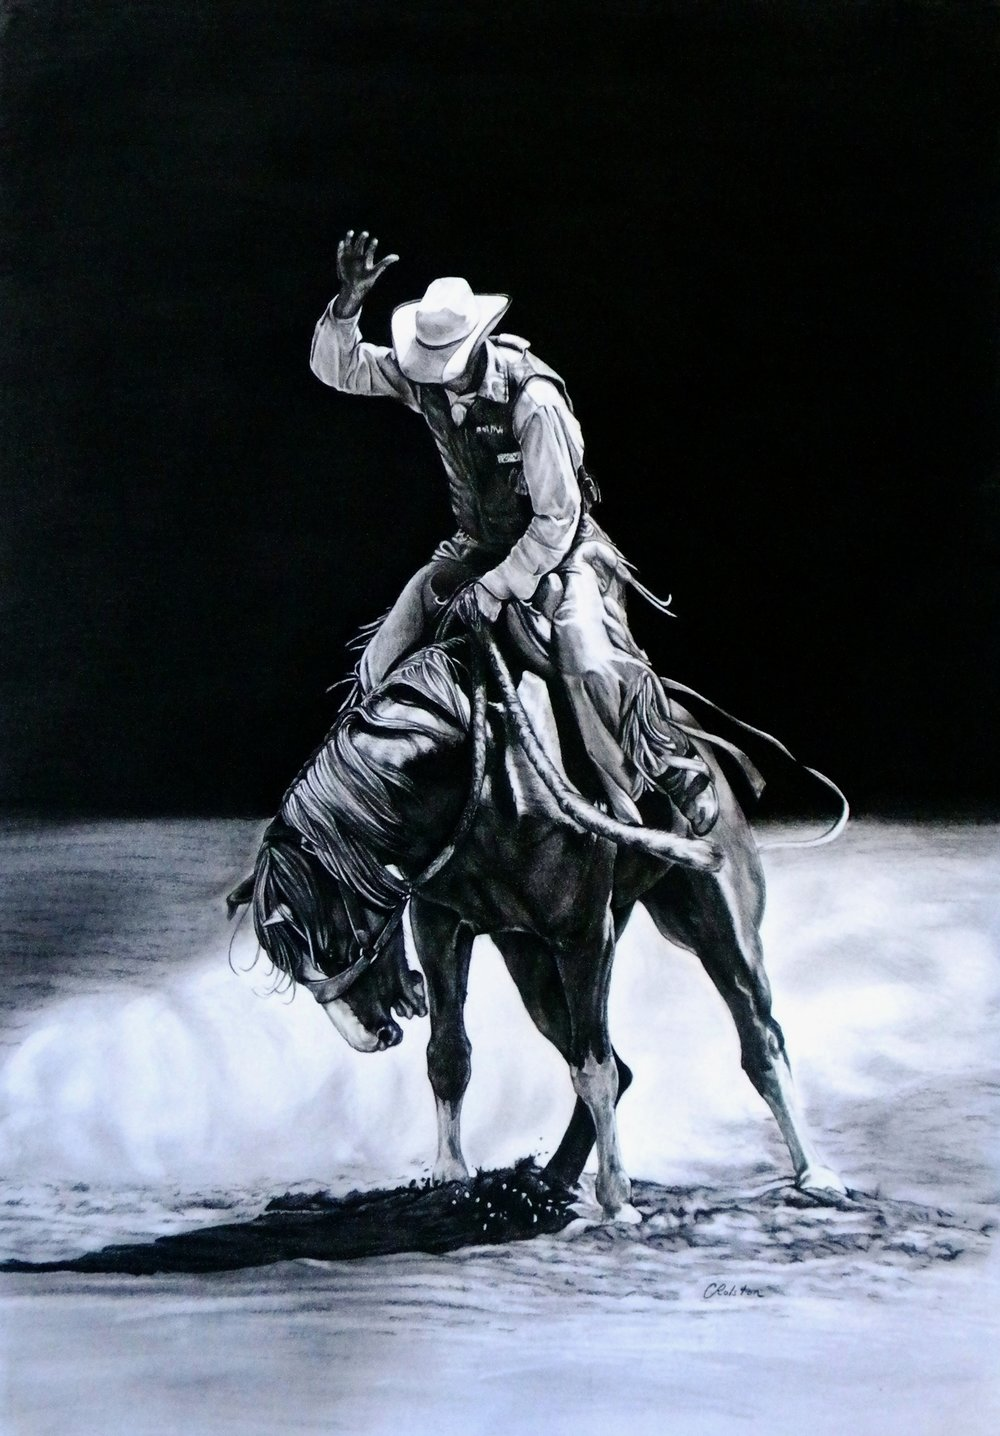 Bronc has landed (sold)